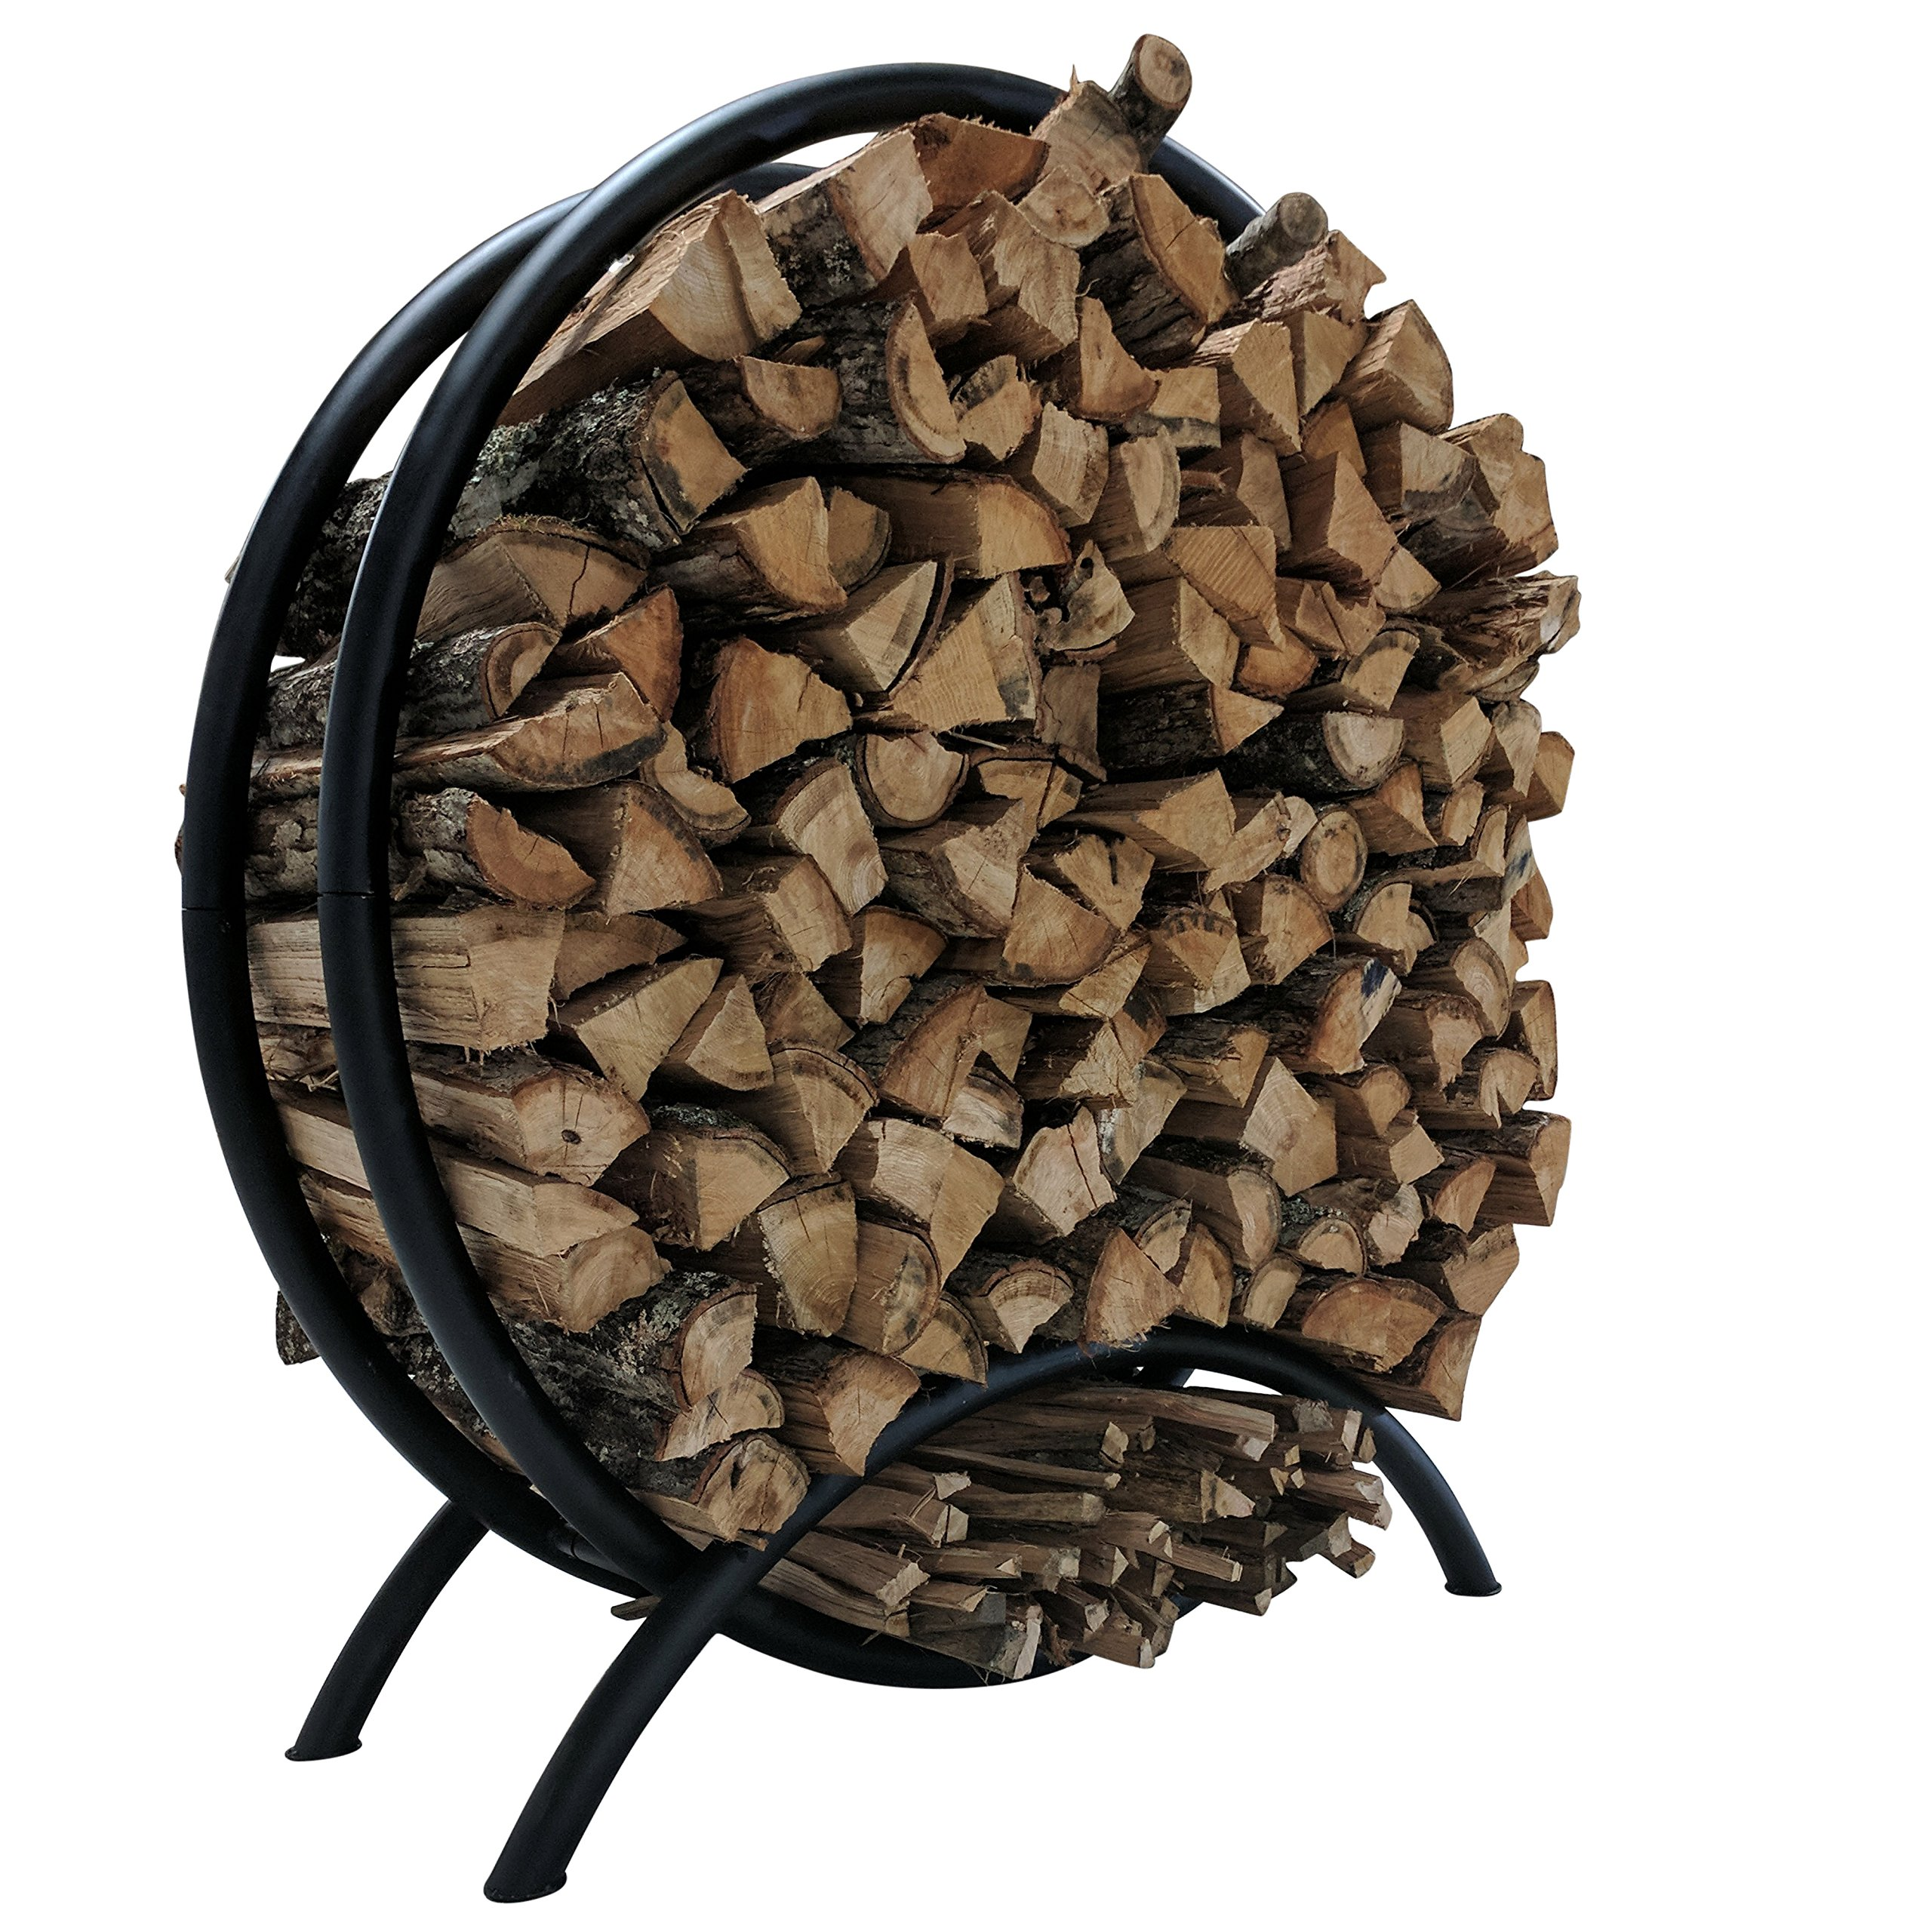 Titan Outdoors 54'' Circular Heavy Duty Log Rack by Titan Great Outdoors